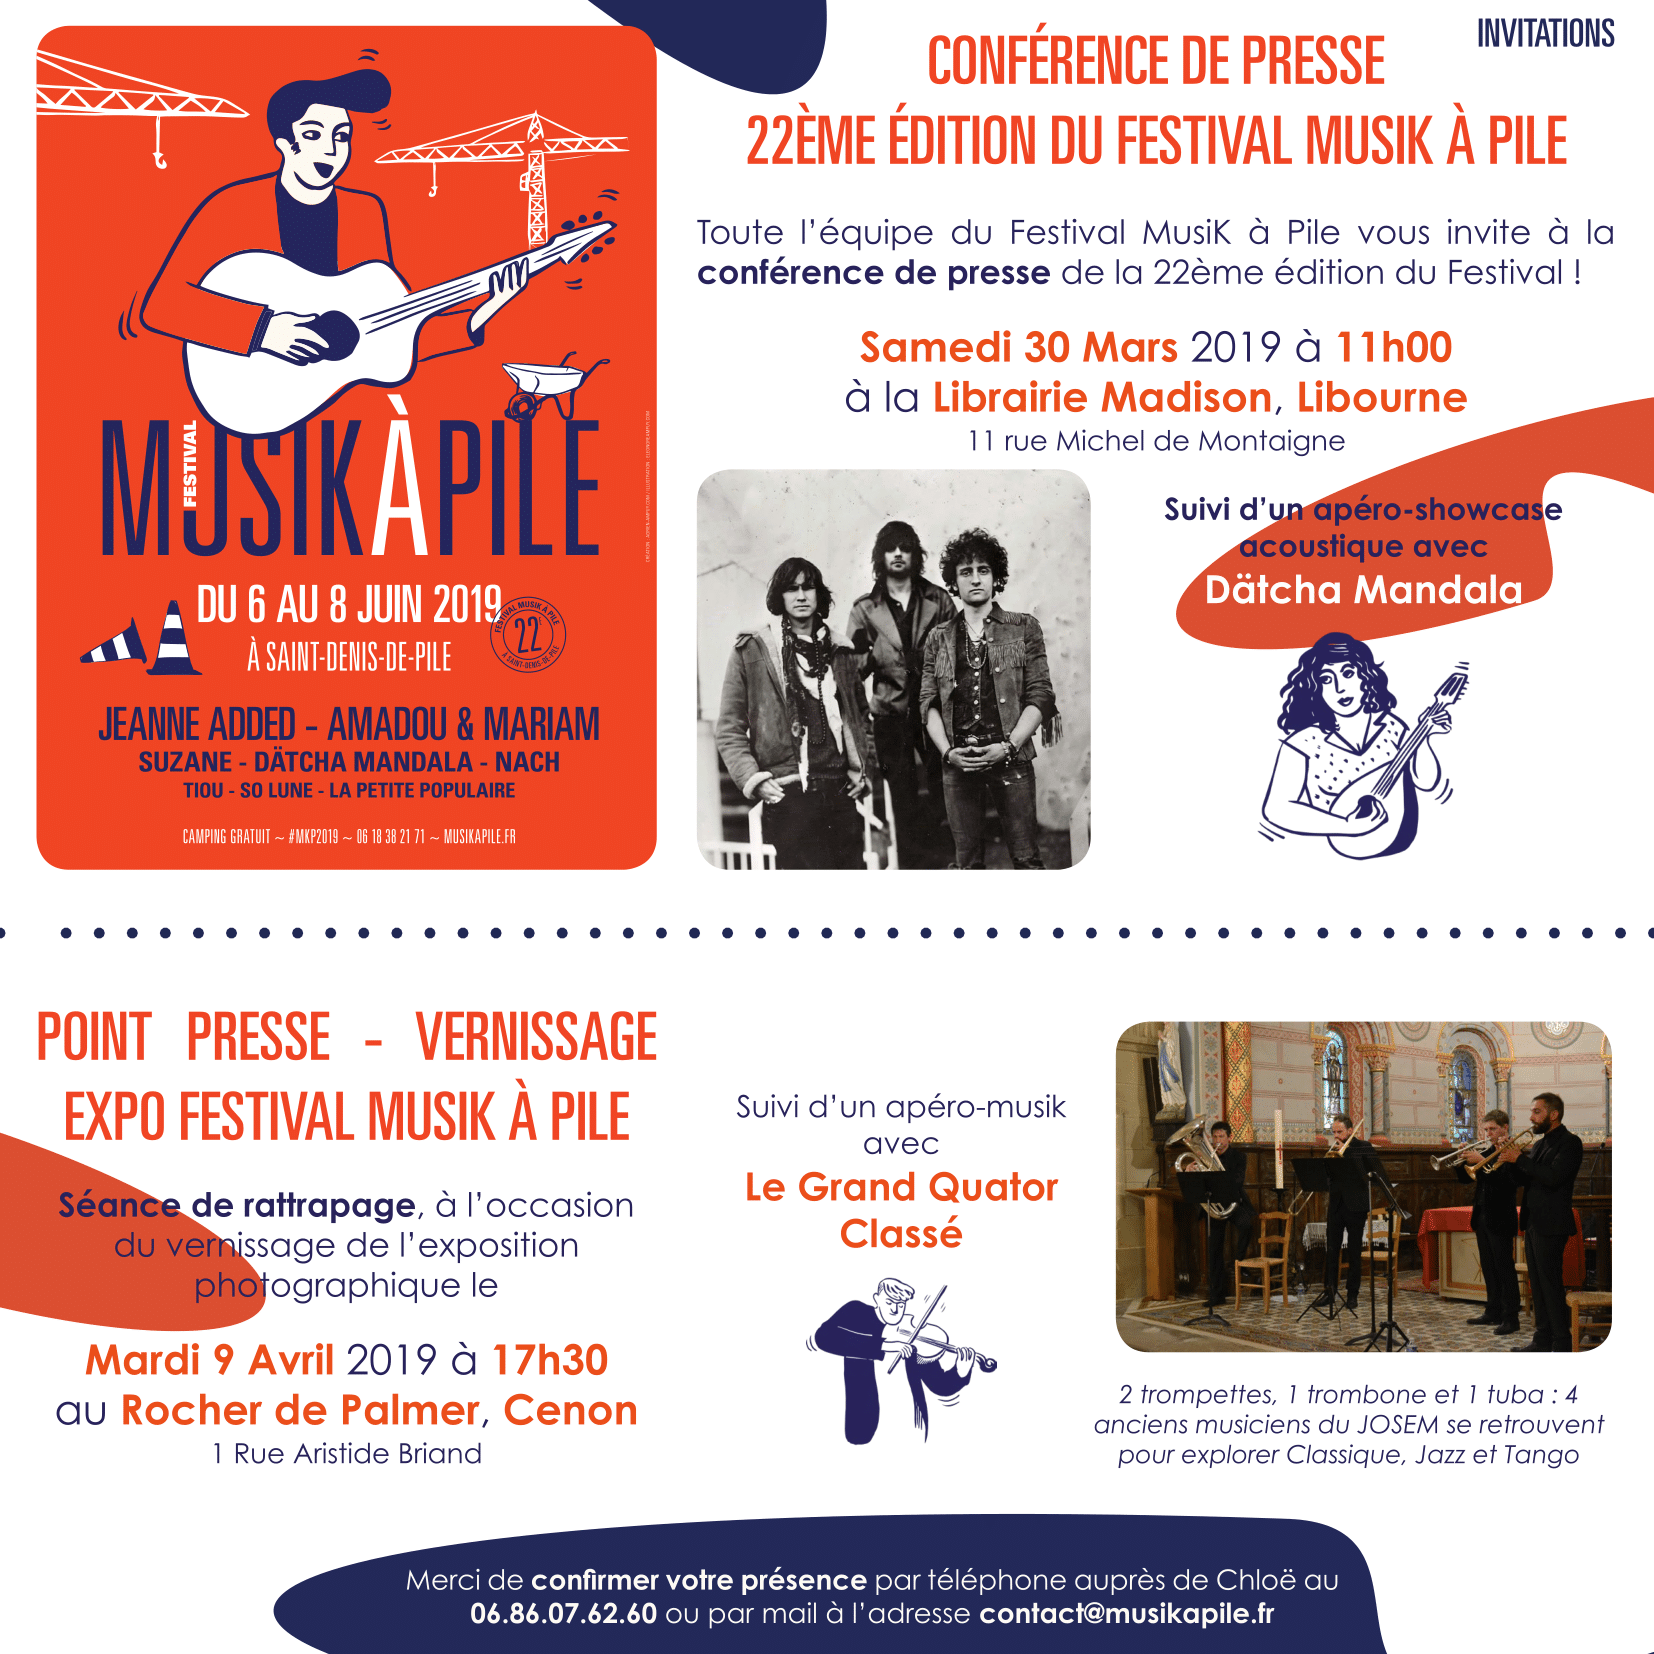 invitation-conference-de-presse-mkp-2019-1